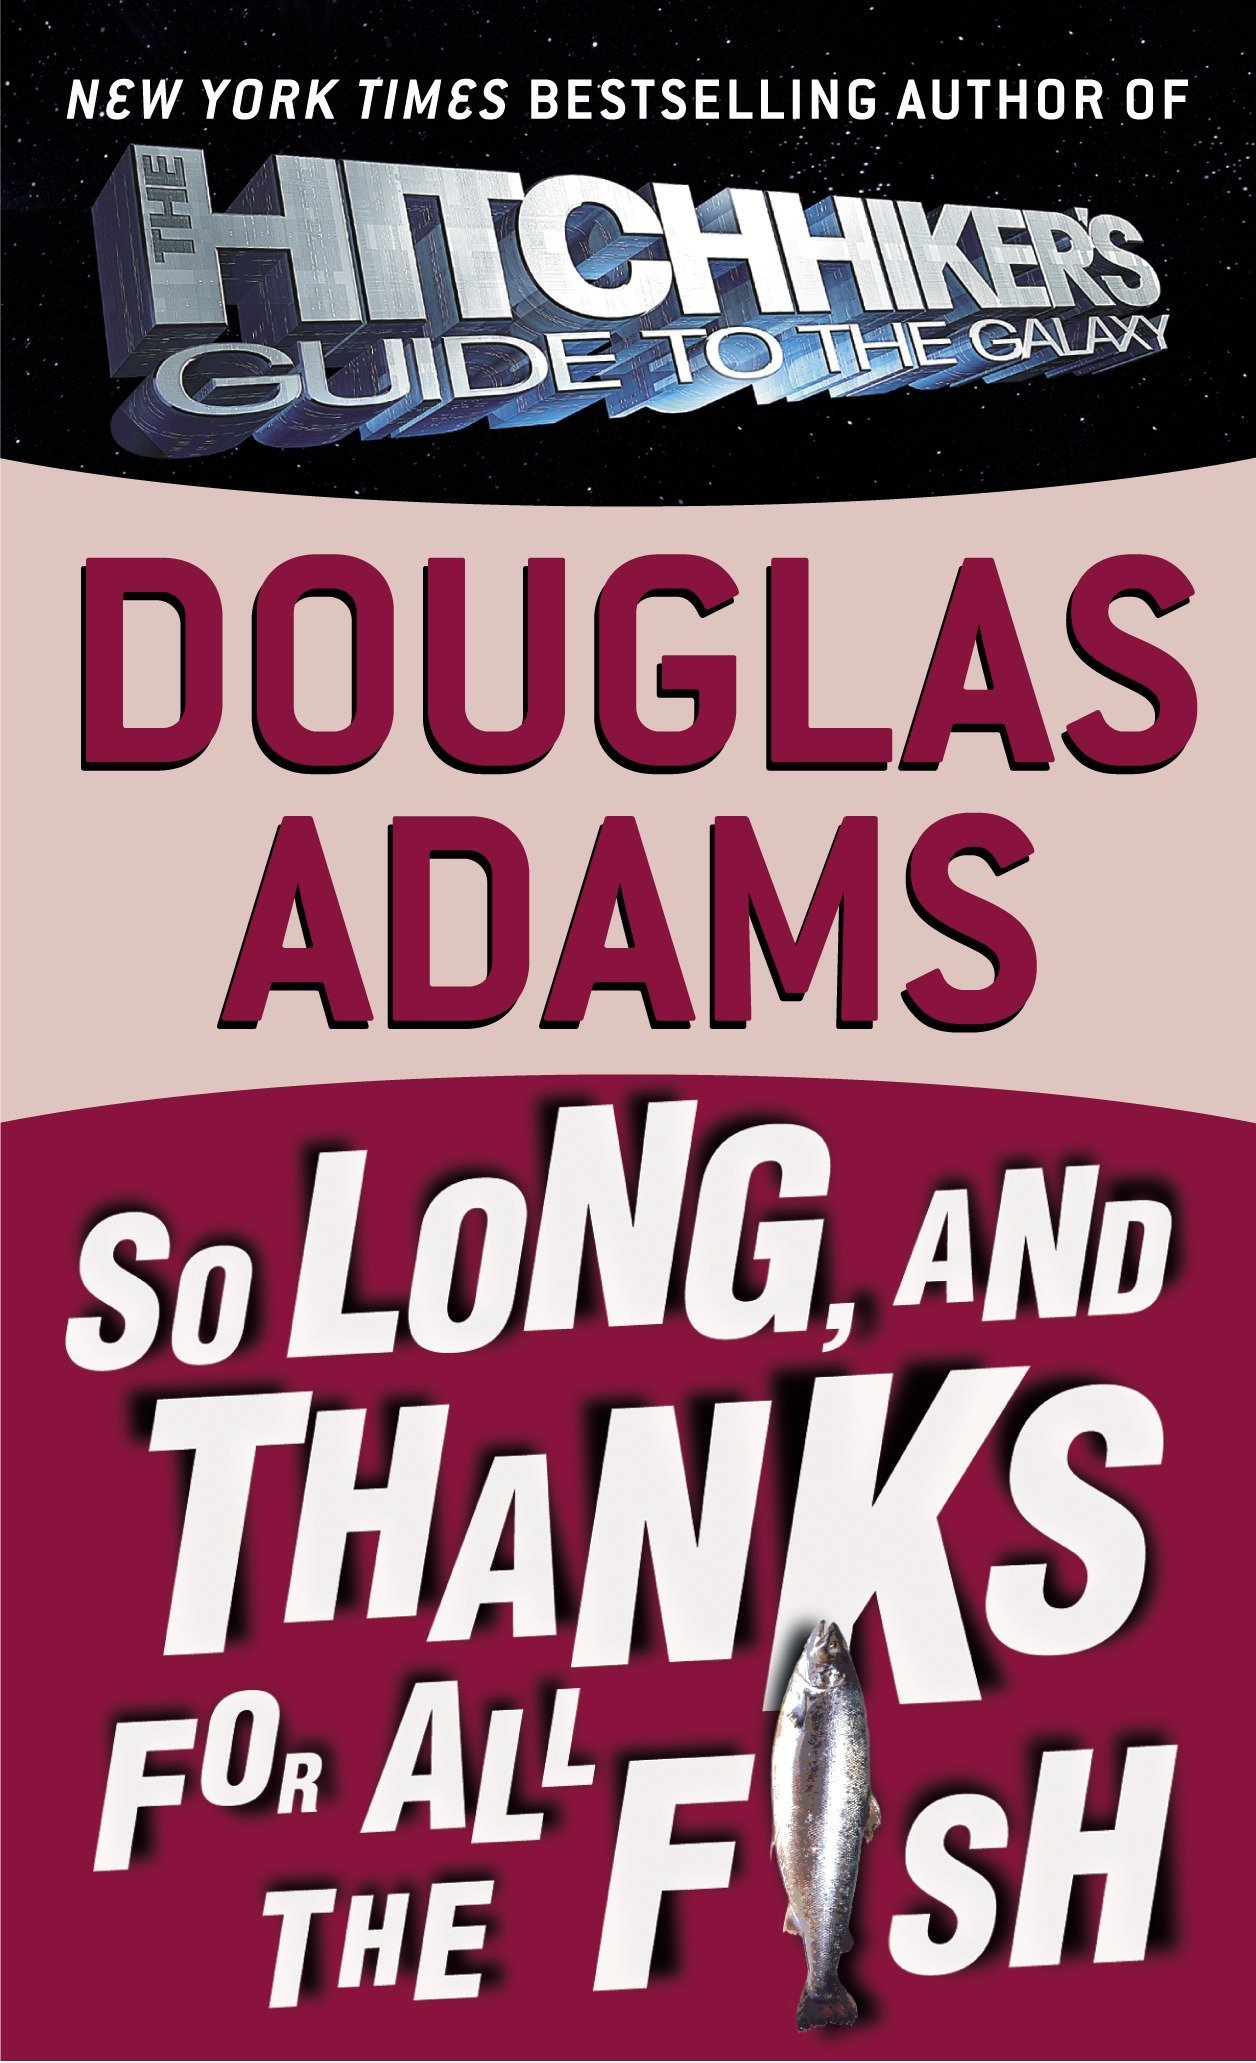 Ebook So Long And Thanks For All The Fish Hitchhikers Guide To The Galaxy 4 By Douglas Adams